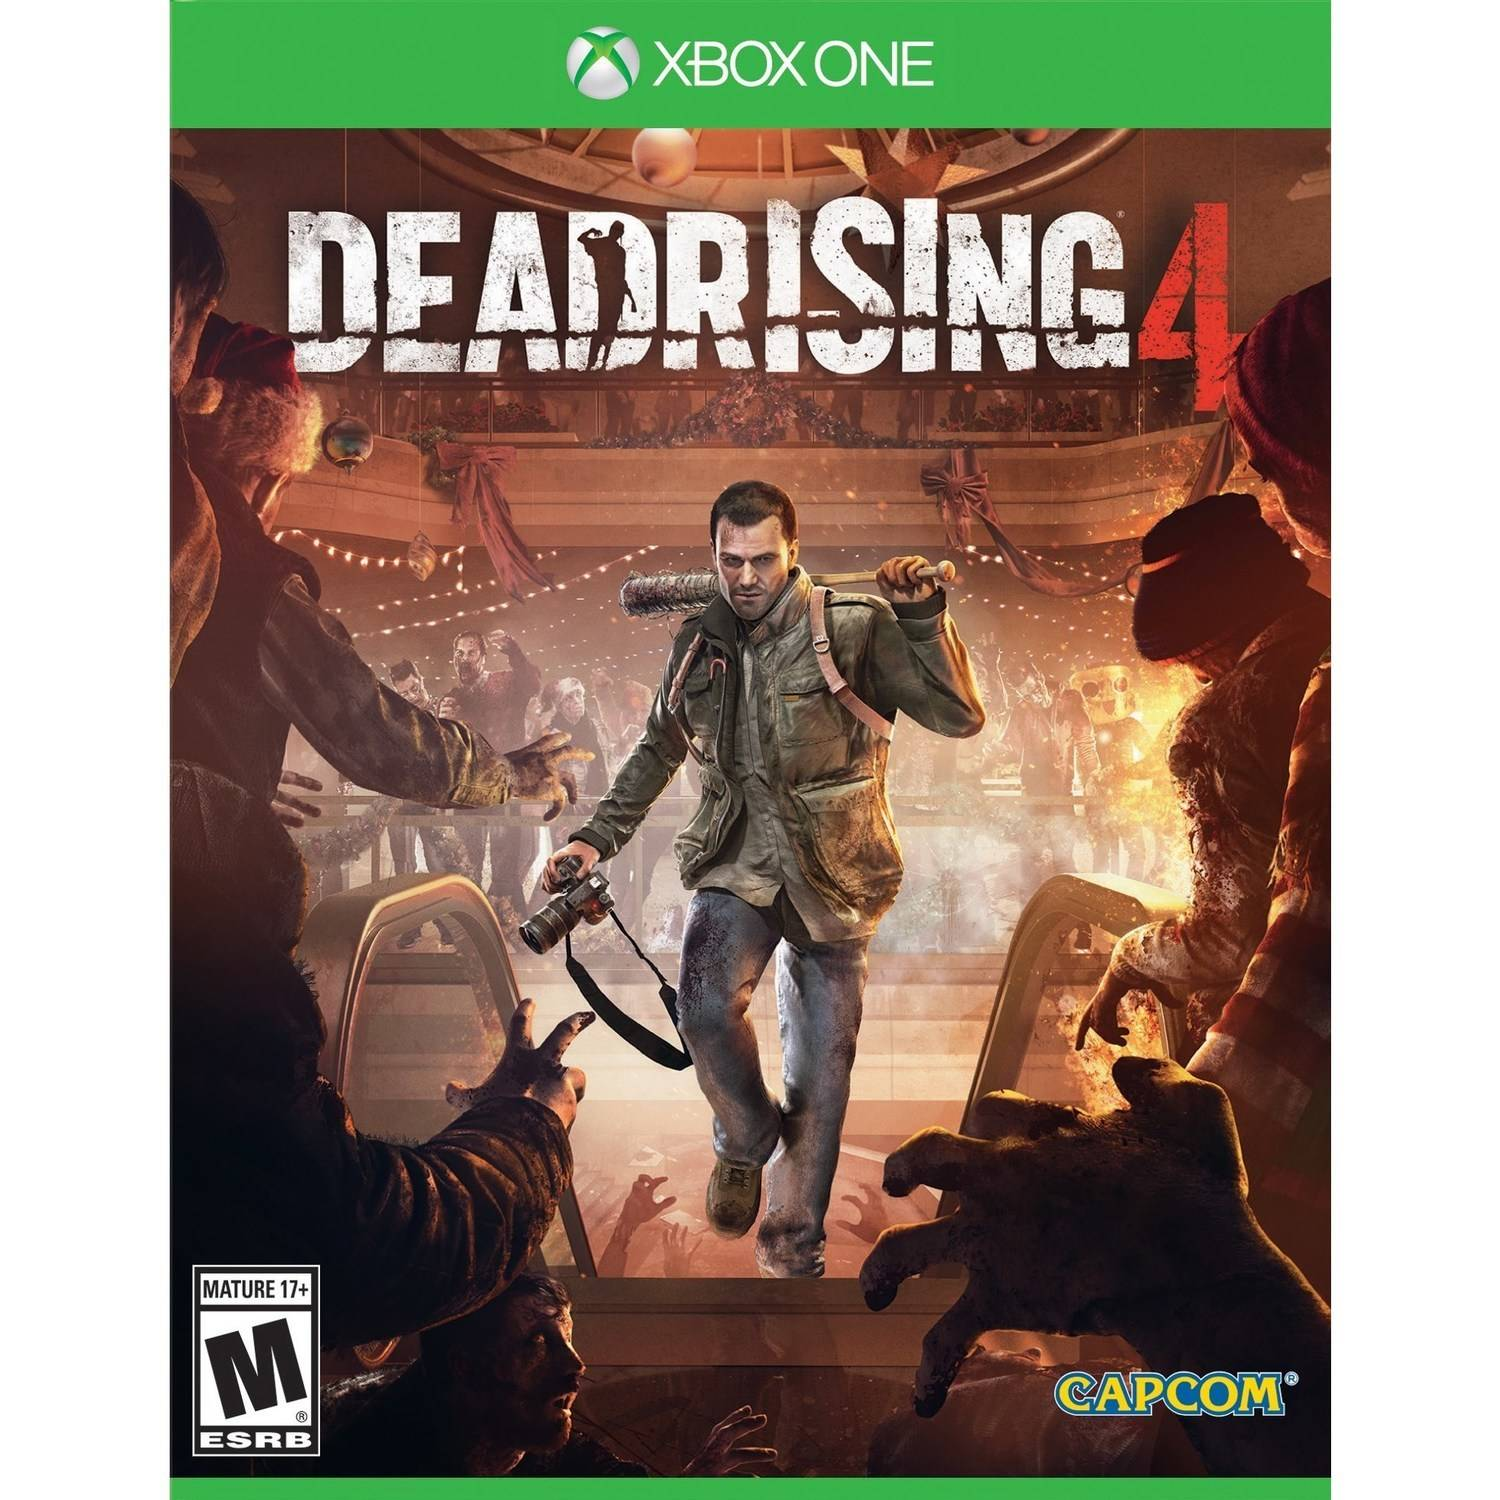 Dead Rising 4 (Xbox One) by Capcom Games Studio Vancouver, Inc.